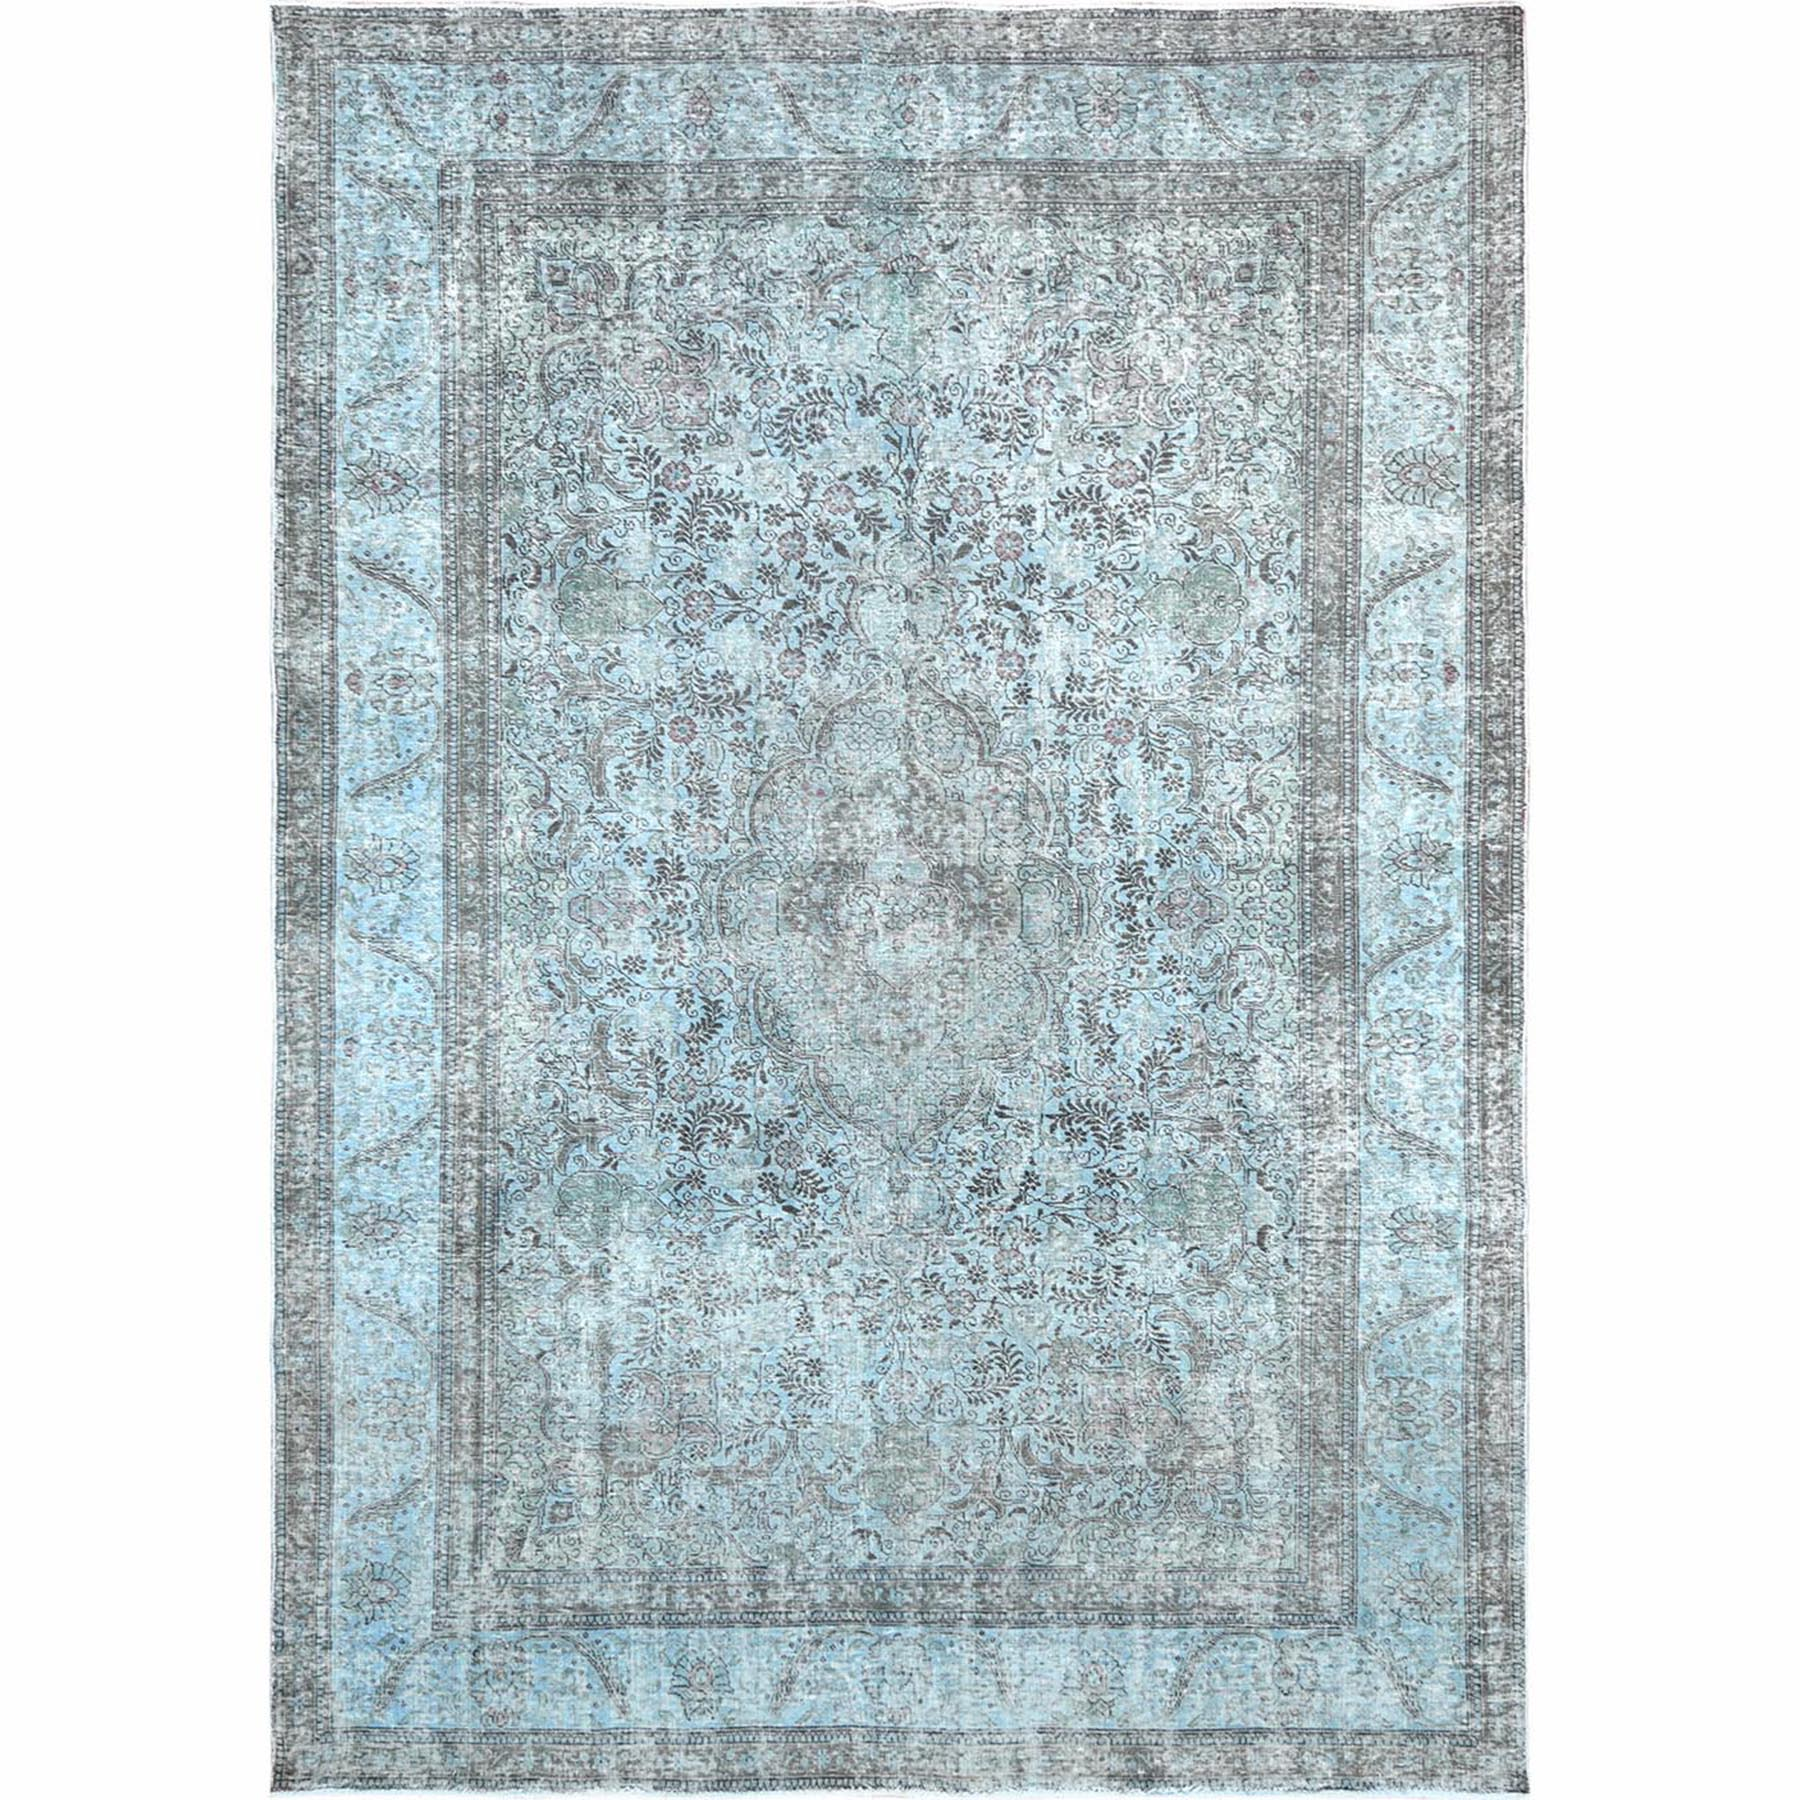 Fetneh Collection And Vintage Overdyed Collection Hand Knotted Blue Rug No: 1122418